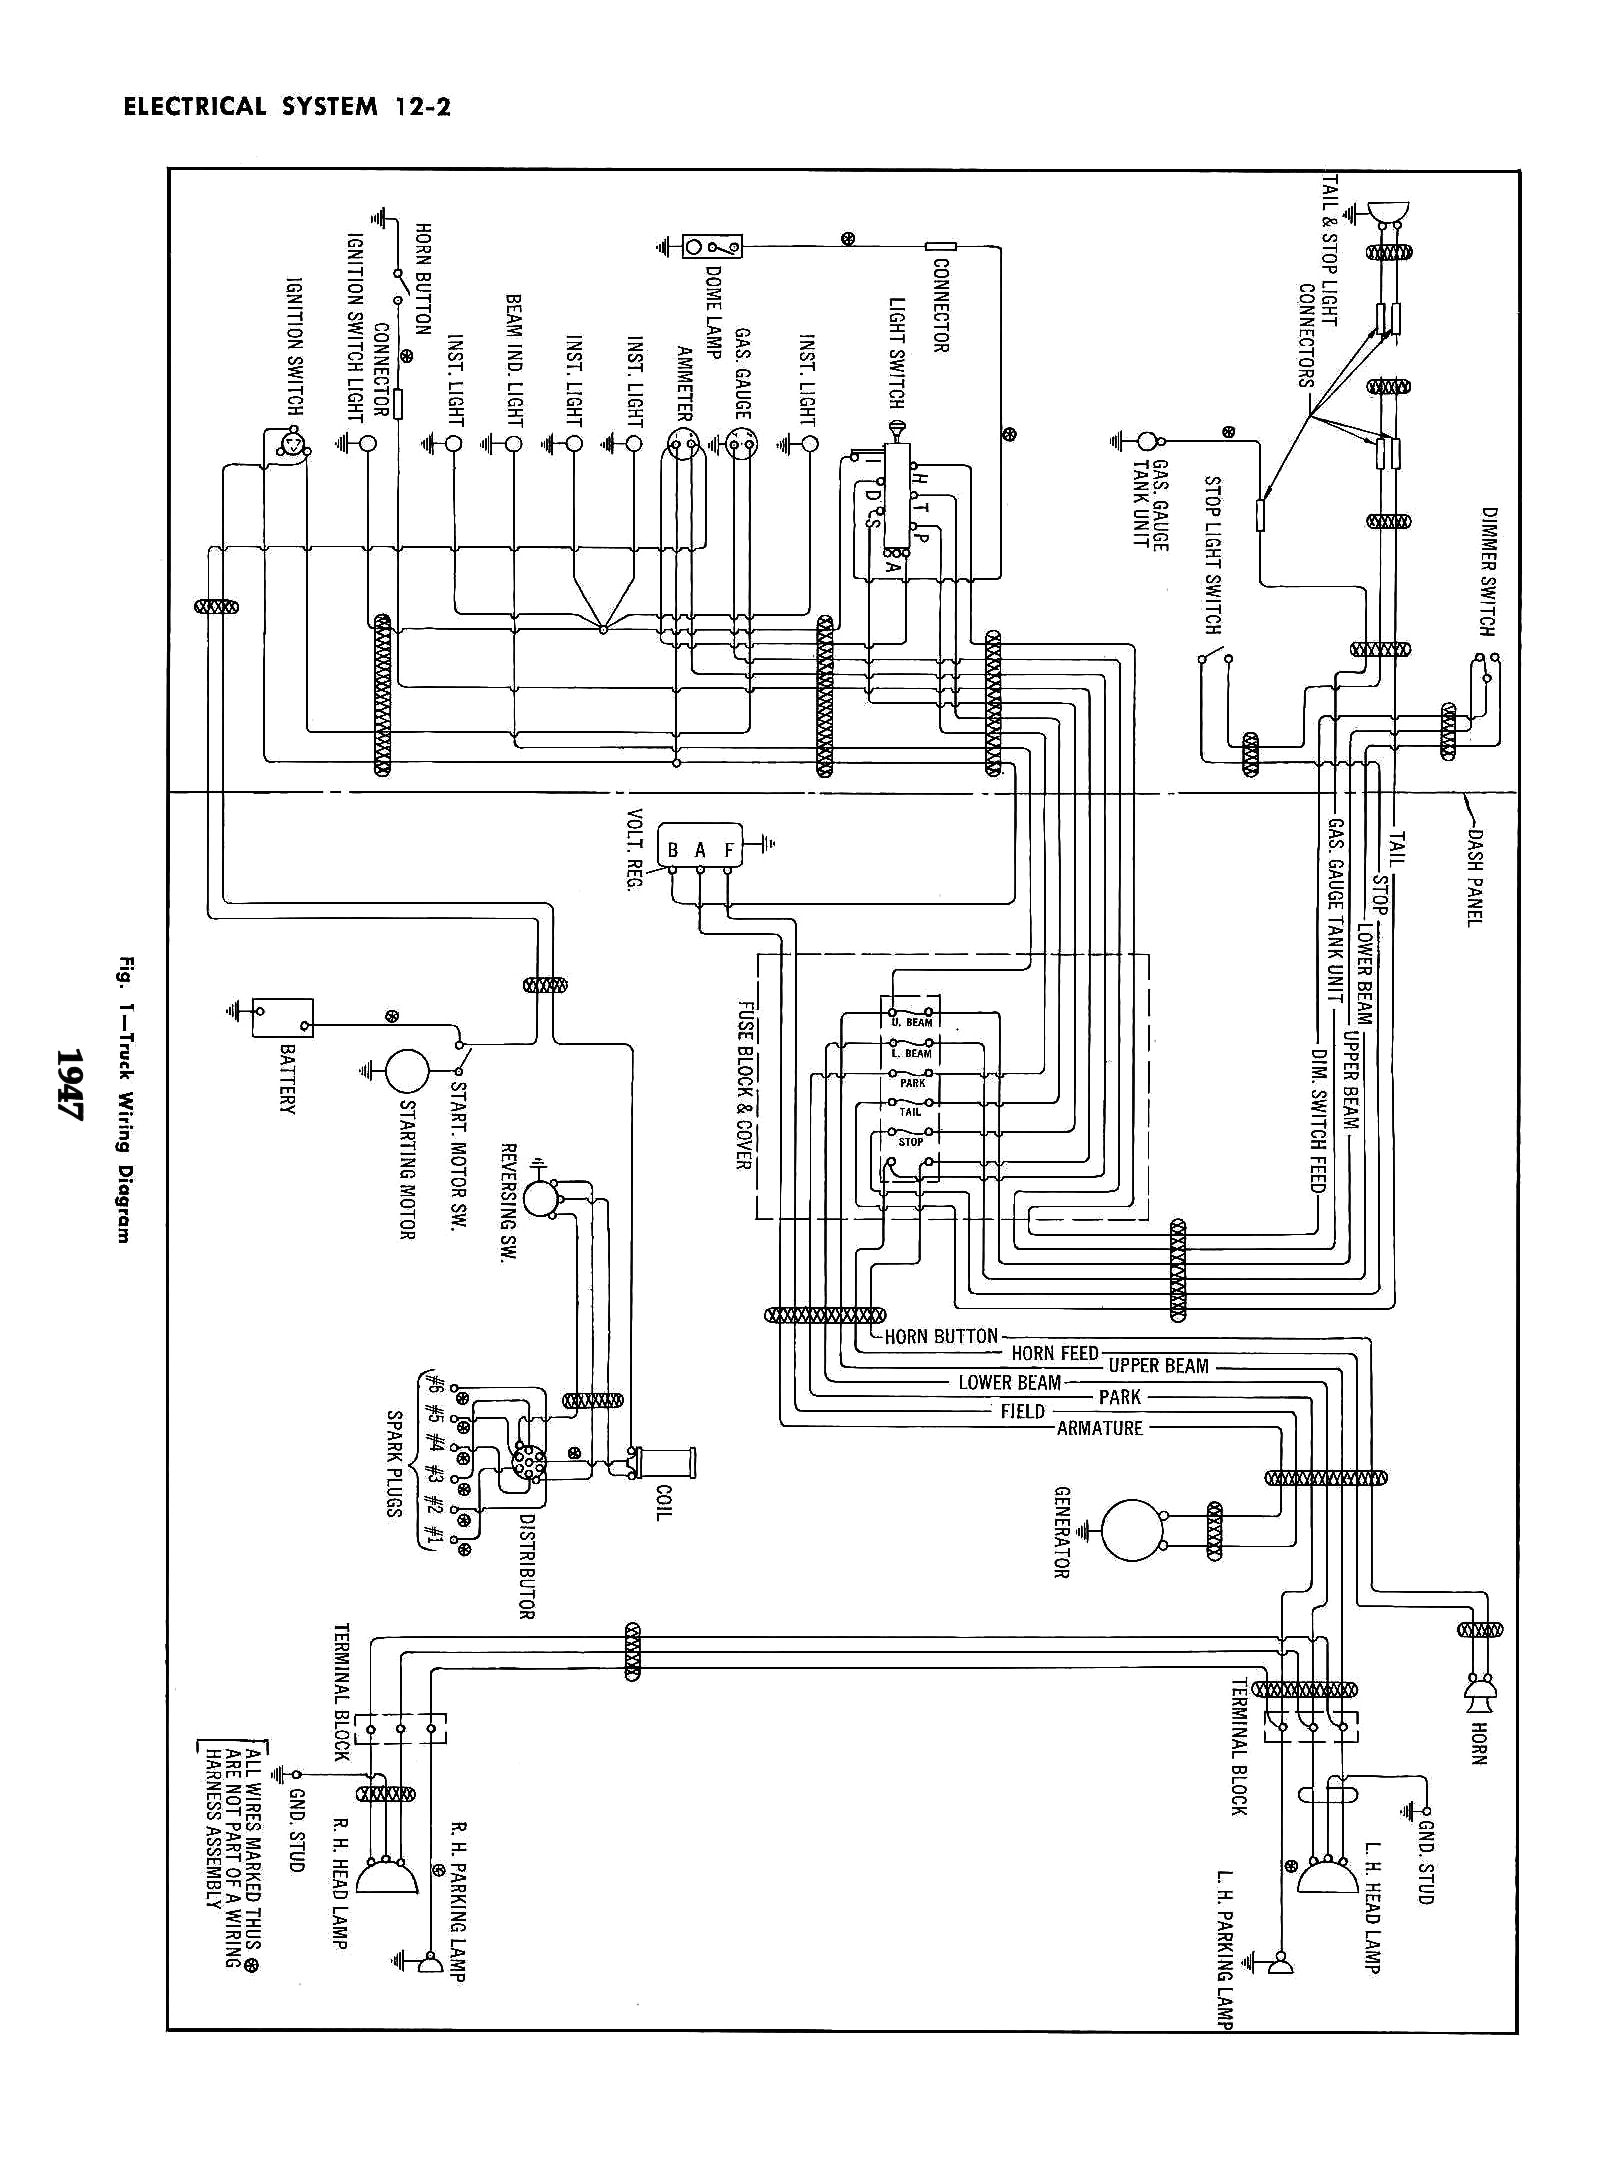 66 chevy headlight switch wiring diagram 1947 chevy headlight switch wiring diagram looking for a wiring schematic for a 1947-48 only of a ...